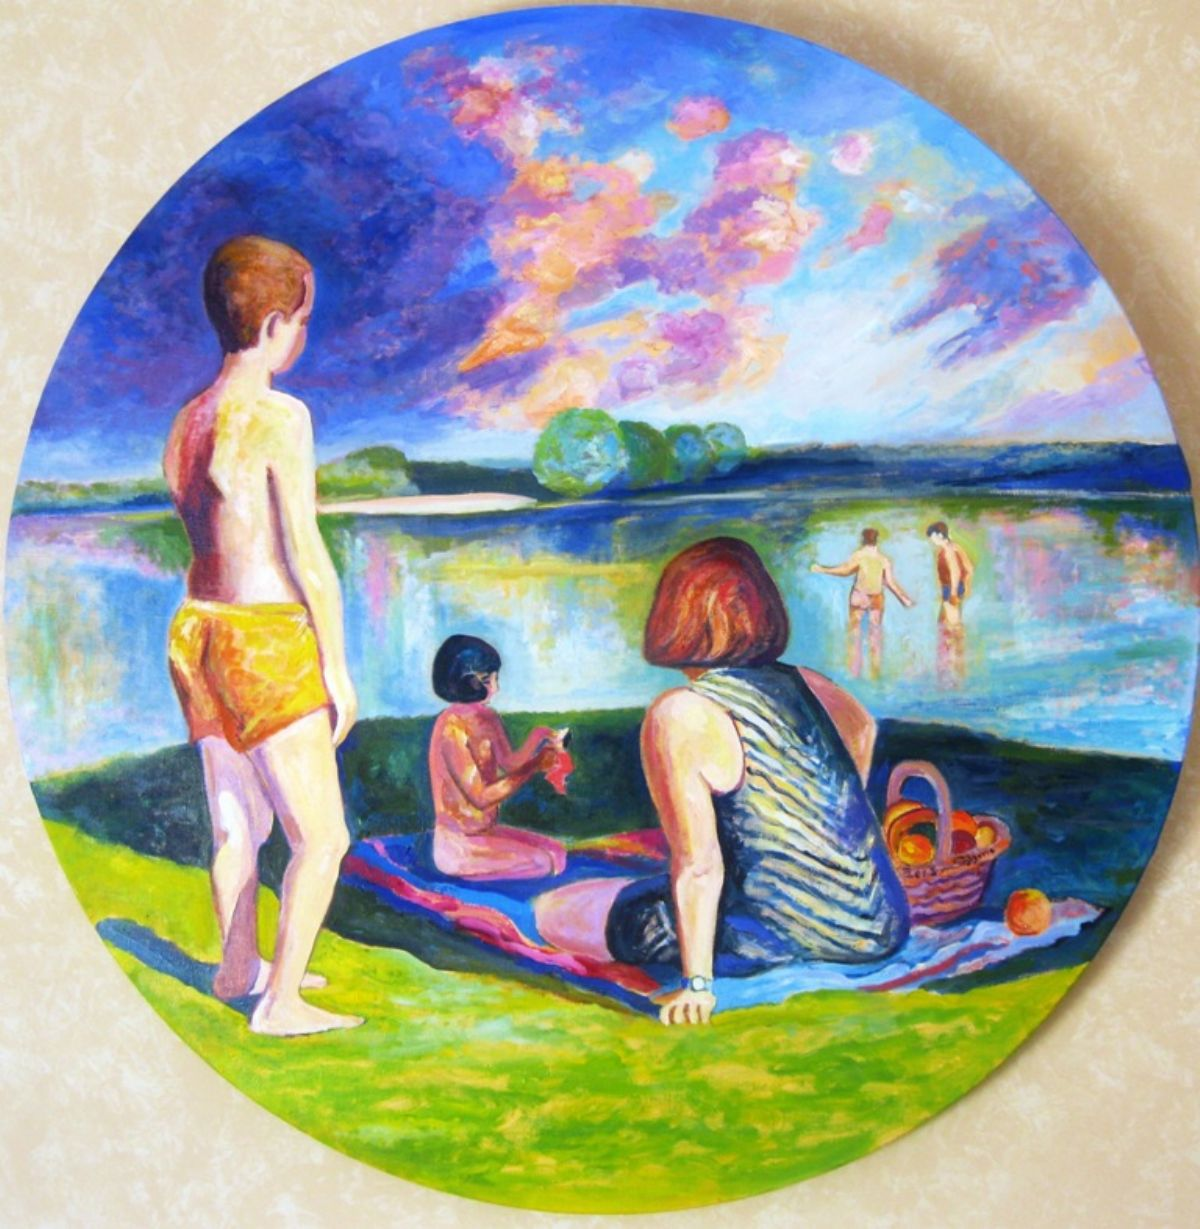 The bath artwork by Gregorio Gigorro - art listed for sale on Artplode